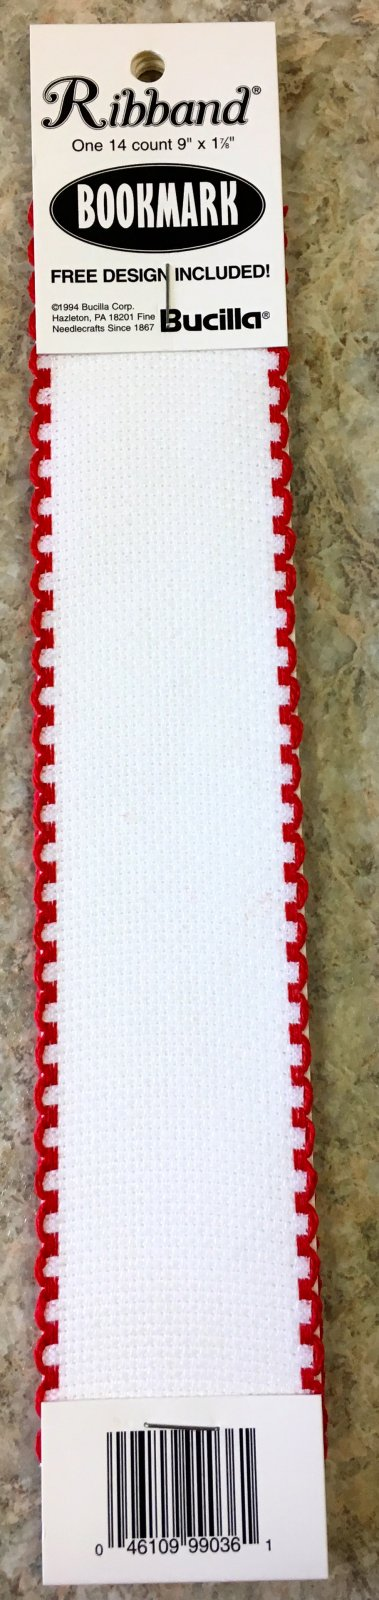 Blank Bookmark White/Red